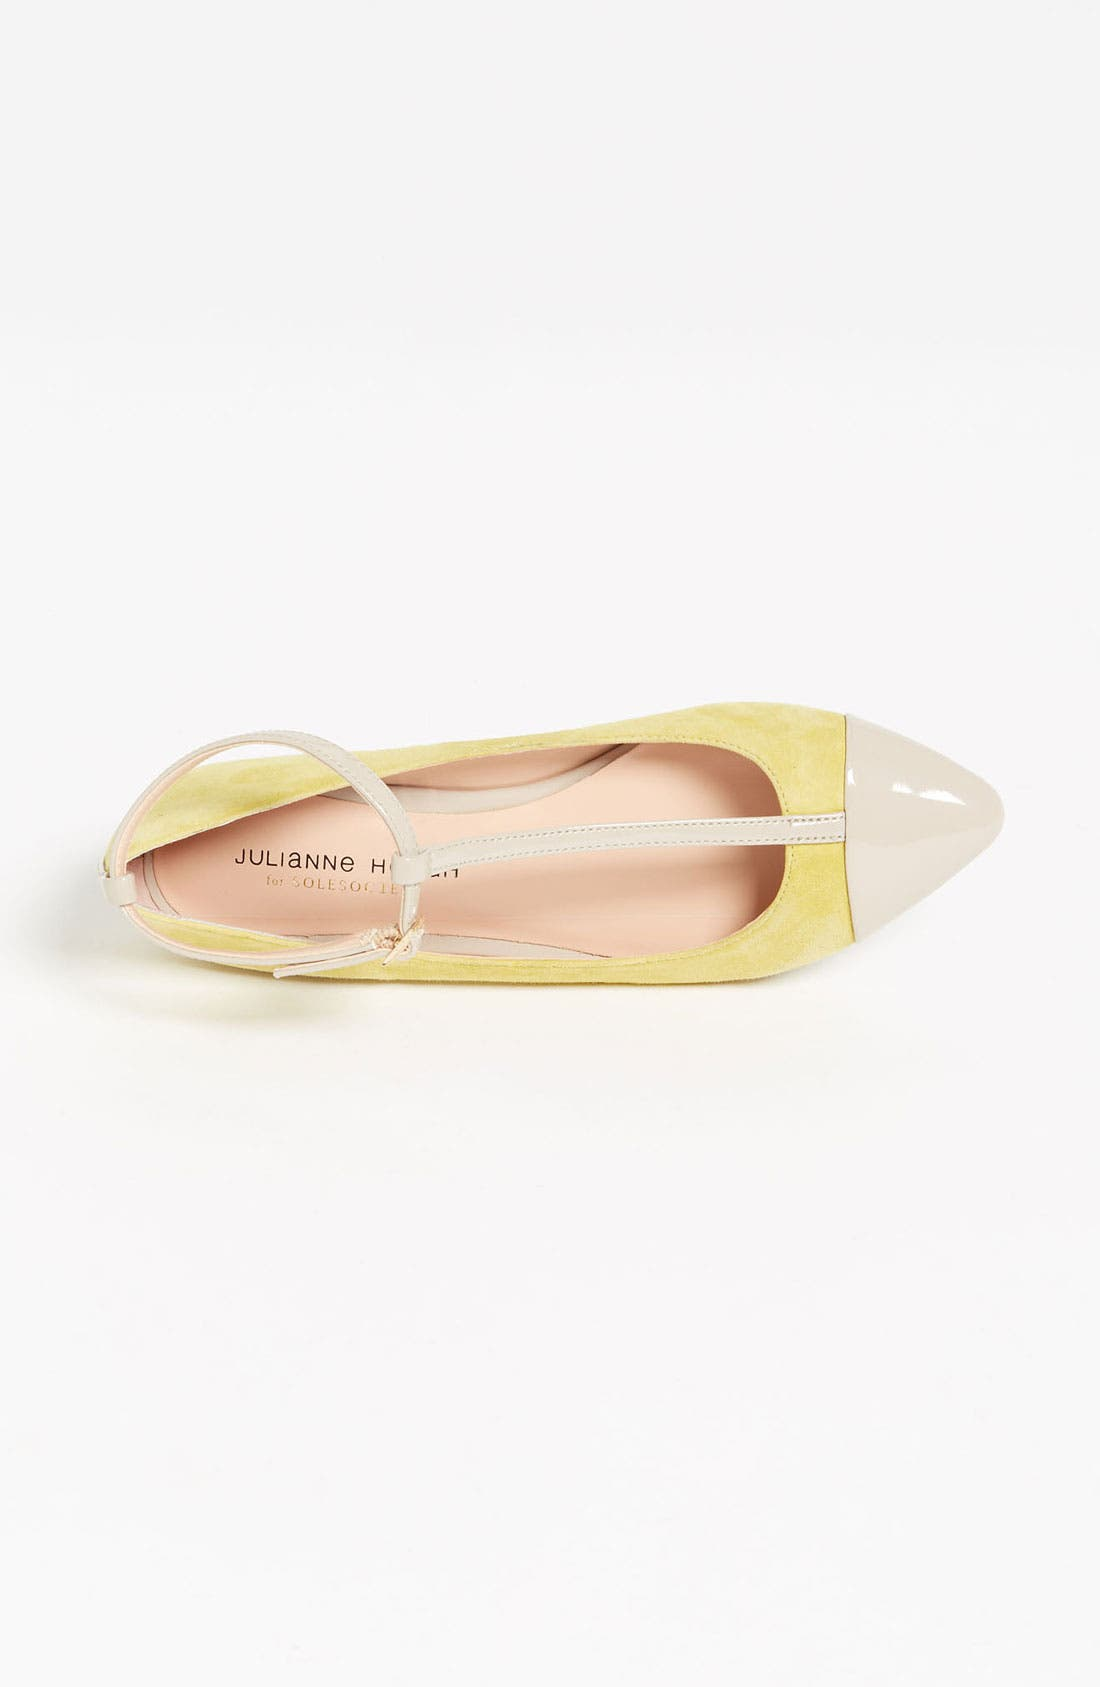 ,                             Julianne Hough for Sole Society 'Addy' Flat,                             Alternate thumbnail 28, color,                             330